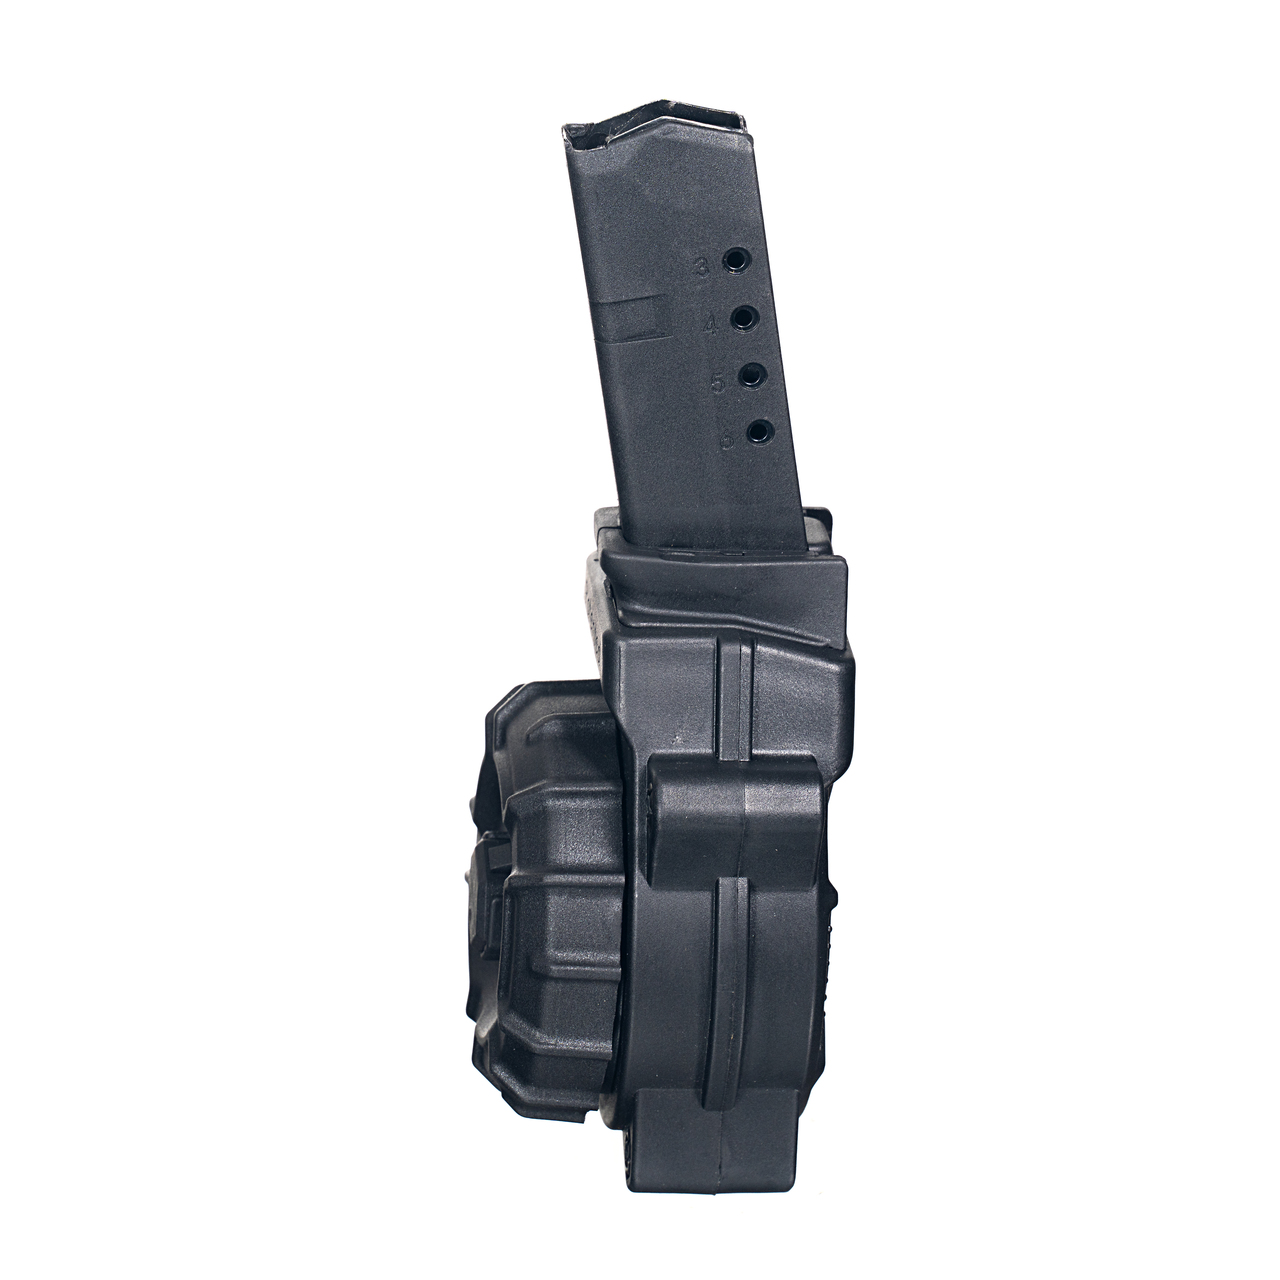 Fits the Glock® Model 43 9mm (30) Rd - Black Polymer Drum